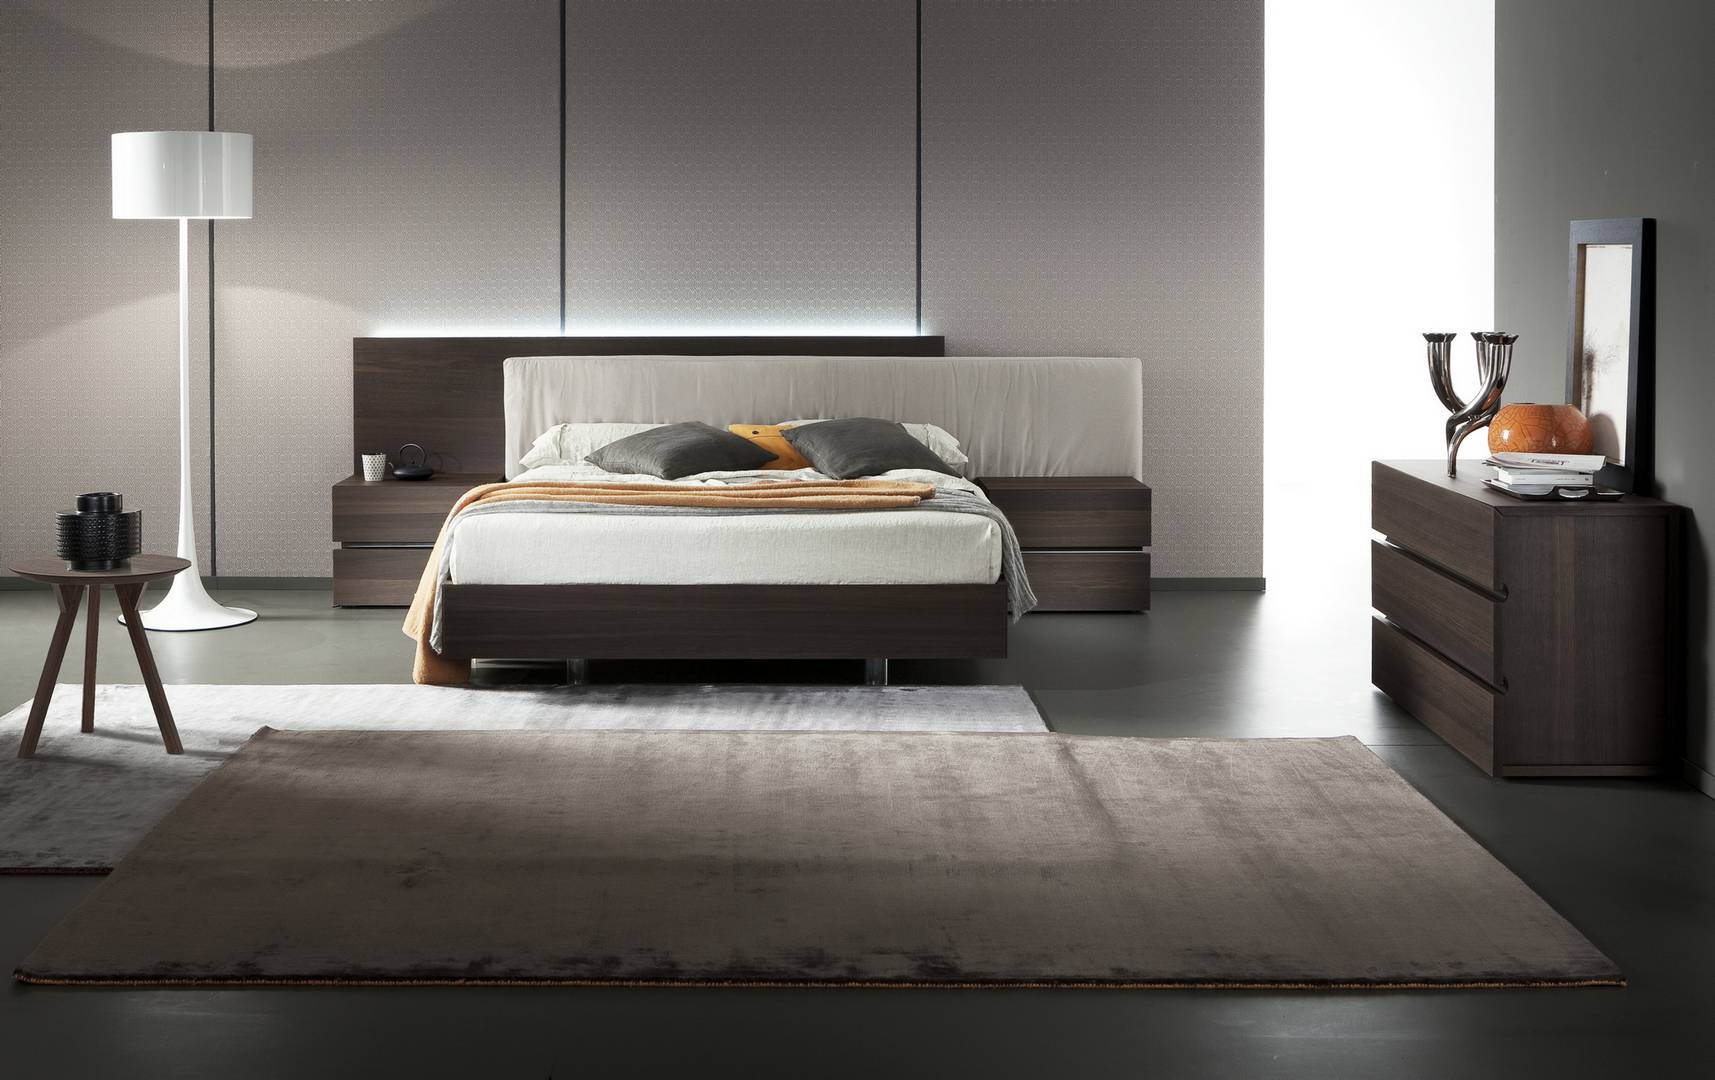 Made in Italy Wood Modern Contemporary Bedroom Sets San Diego     Bedroom Sets Collection  Master Bedroom Furniture